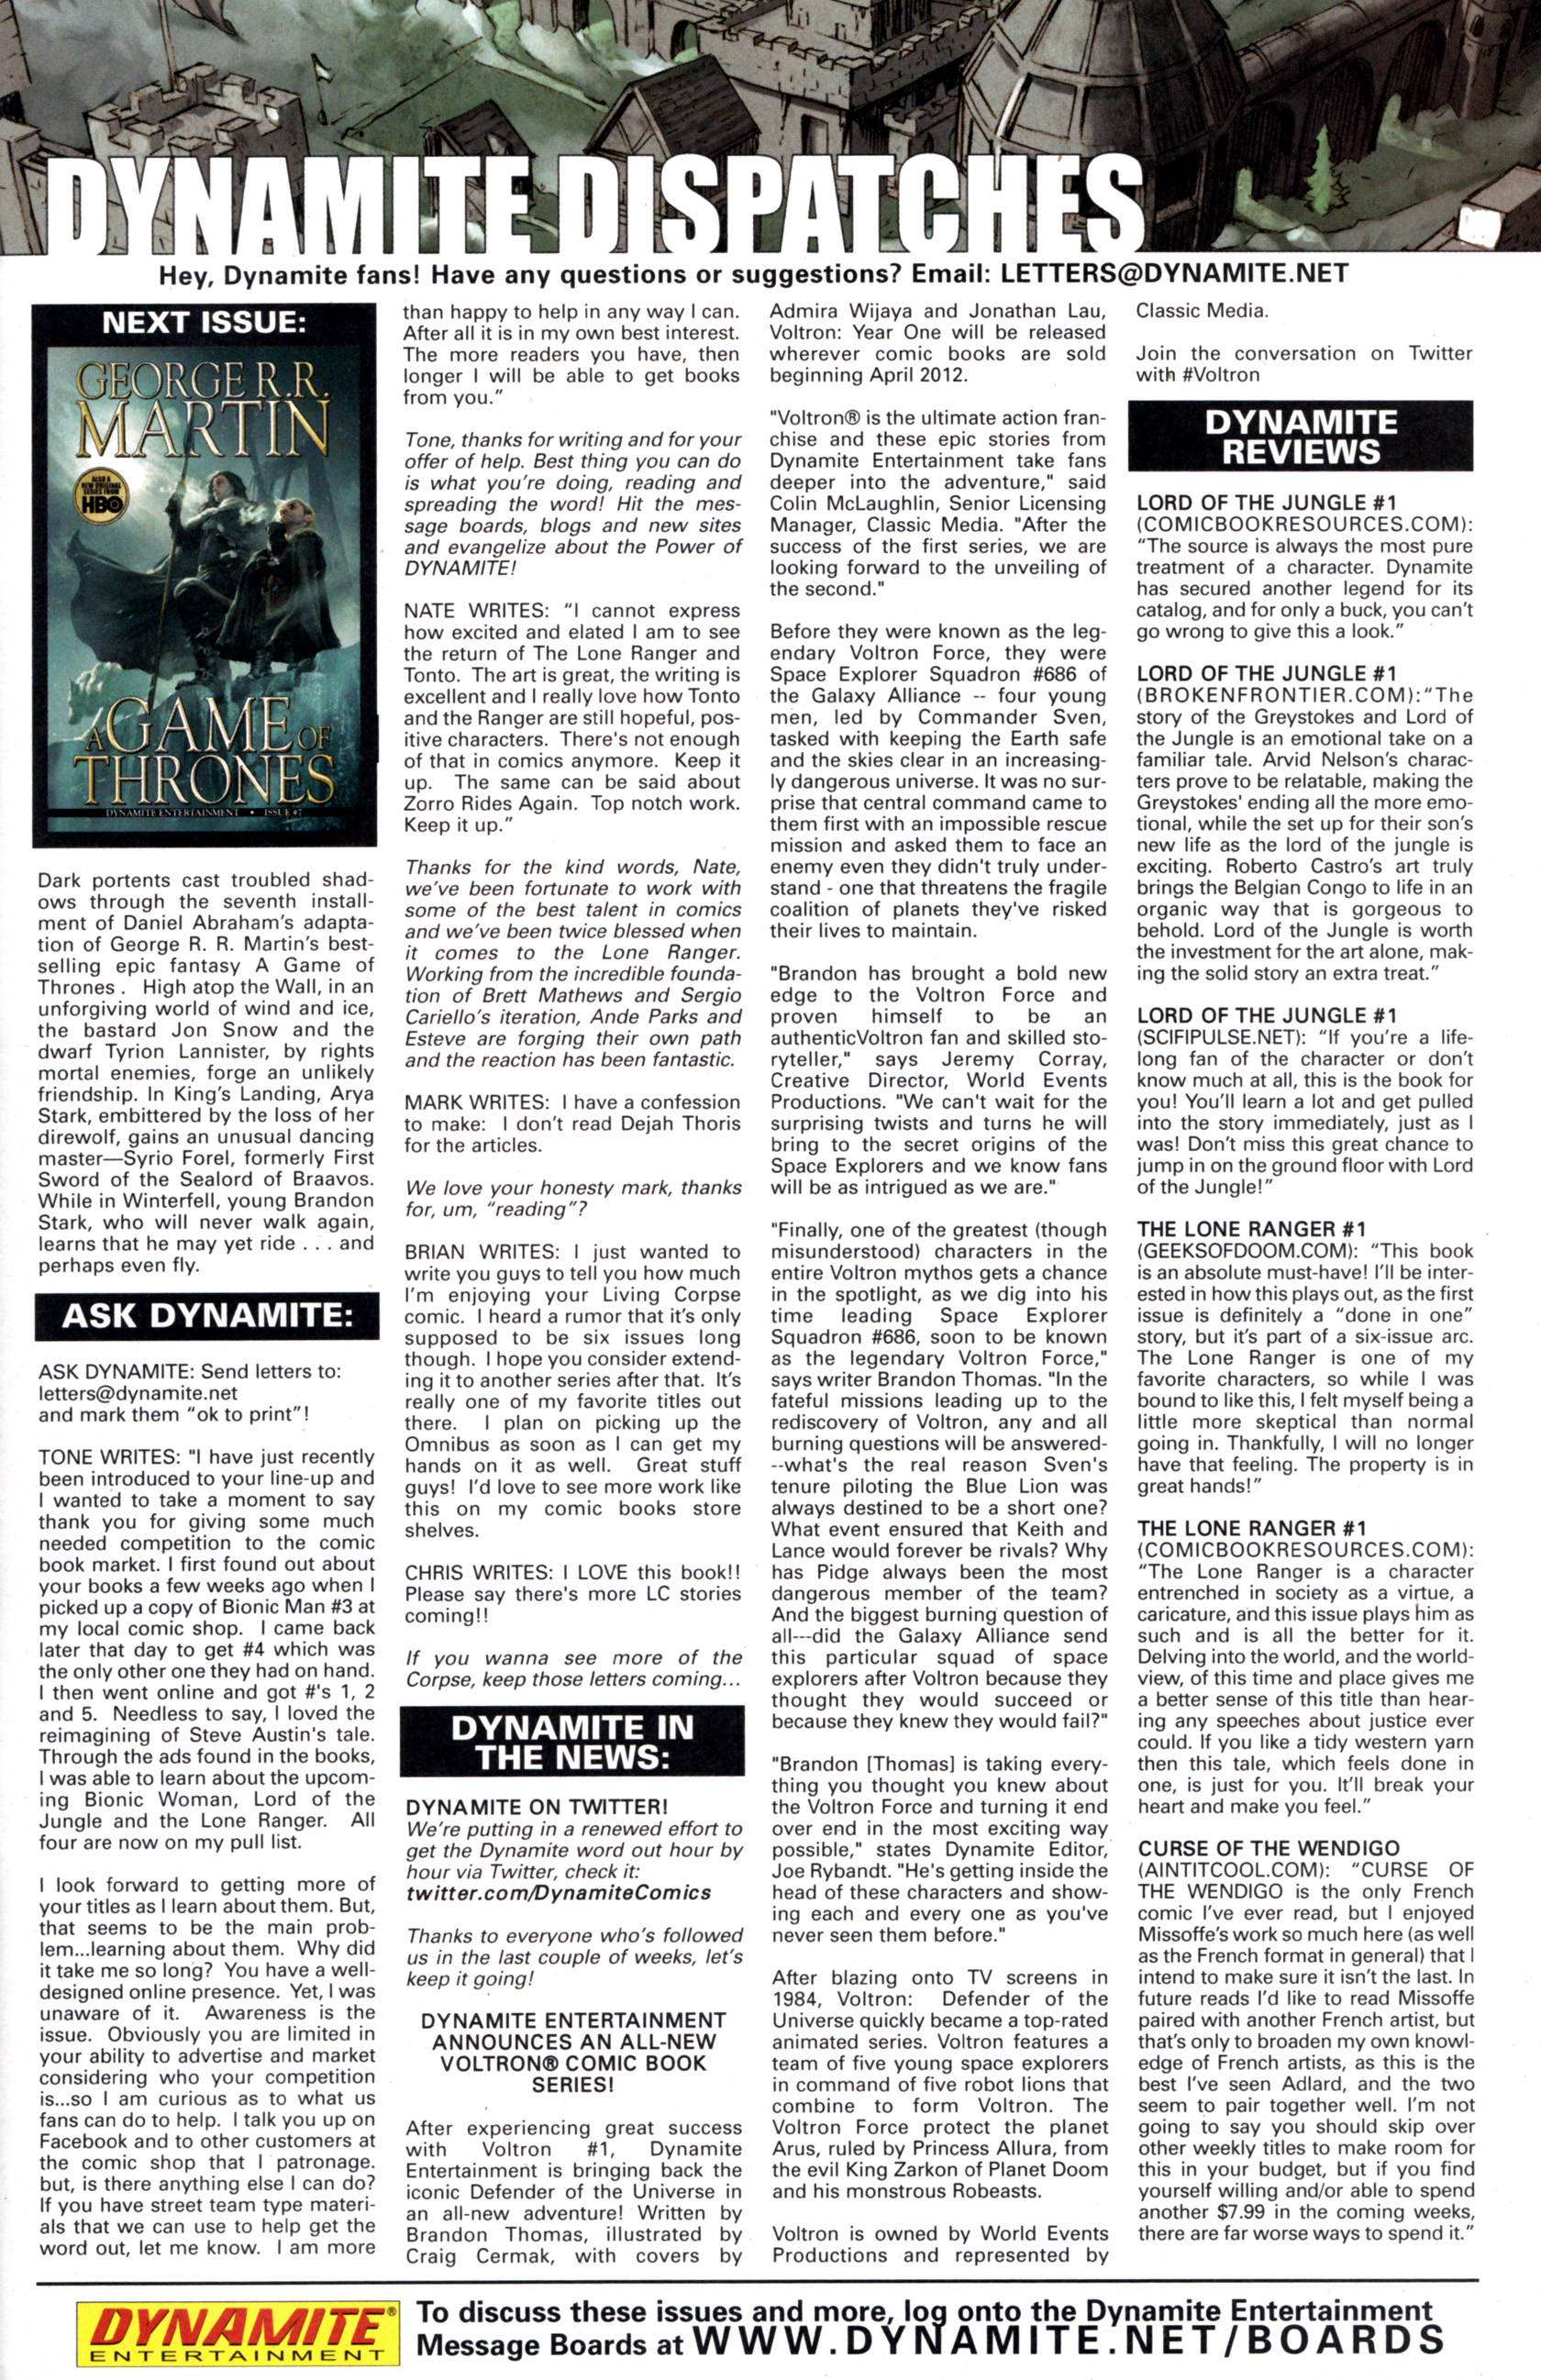 Read online A Game Of Thrones comic -  Issue #6 - 33